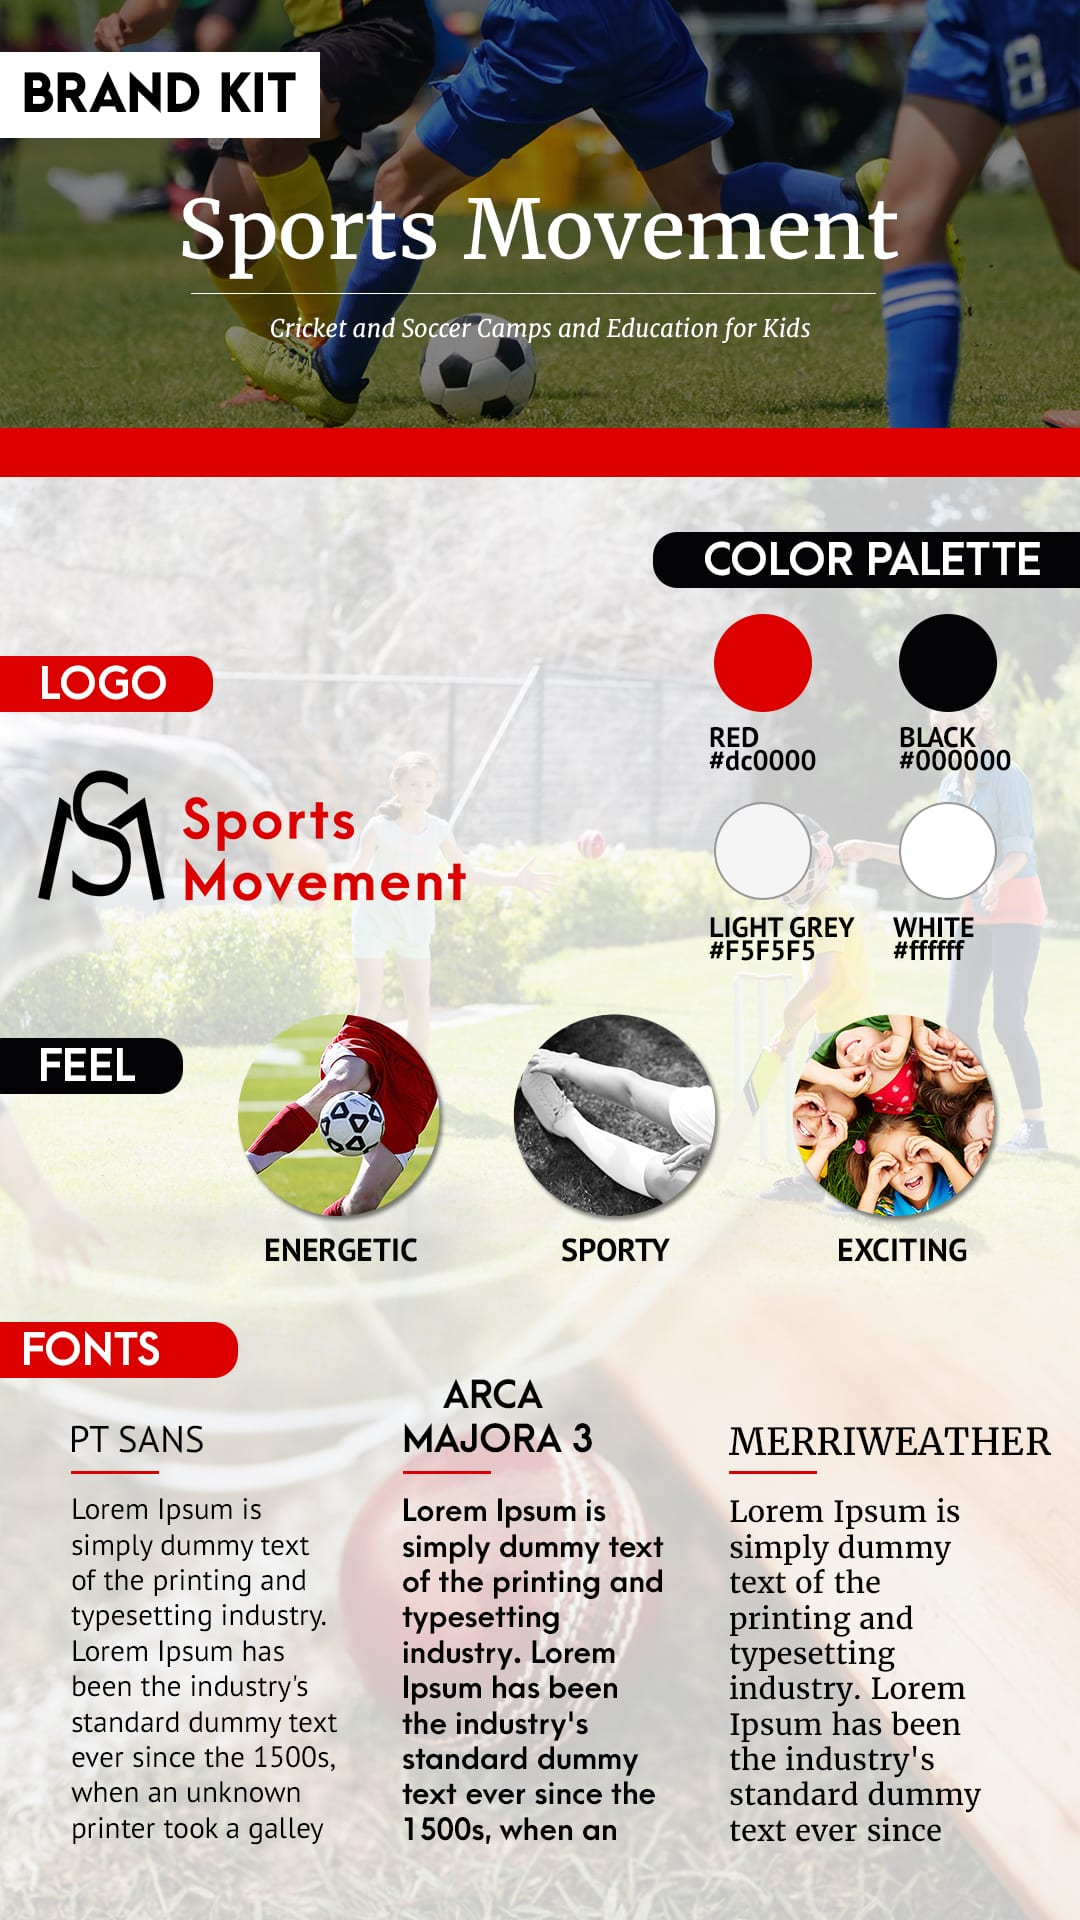 Sports Movement Brand Kit